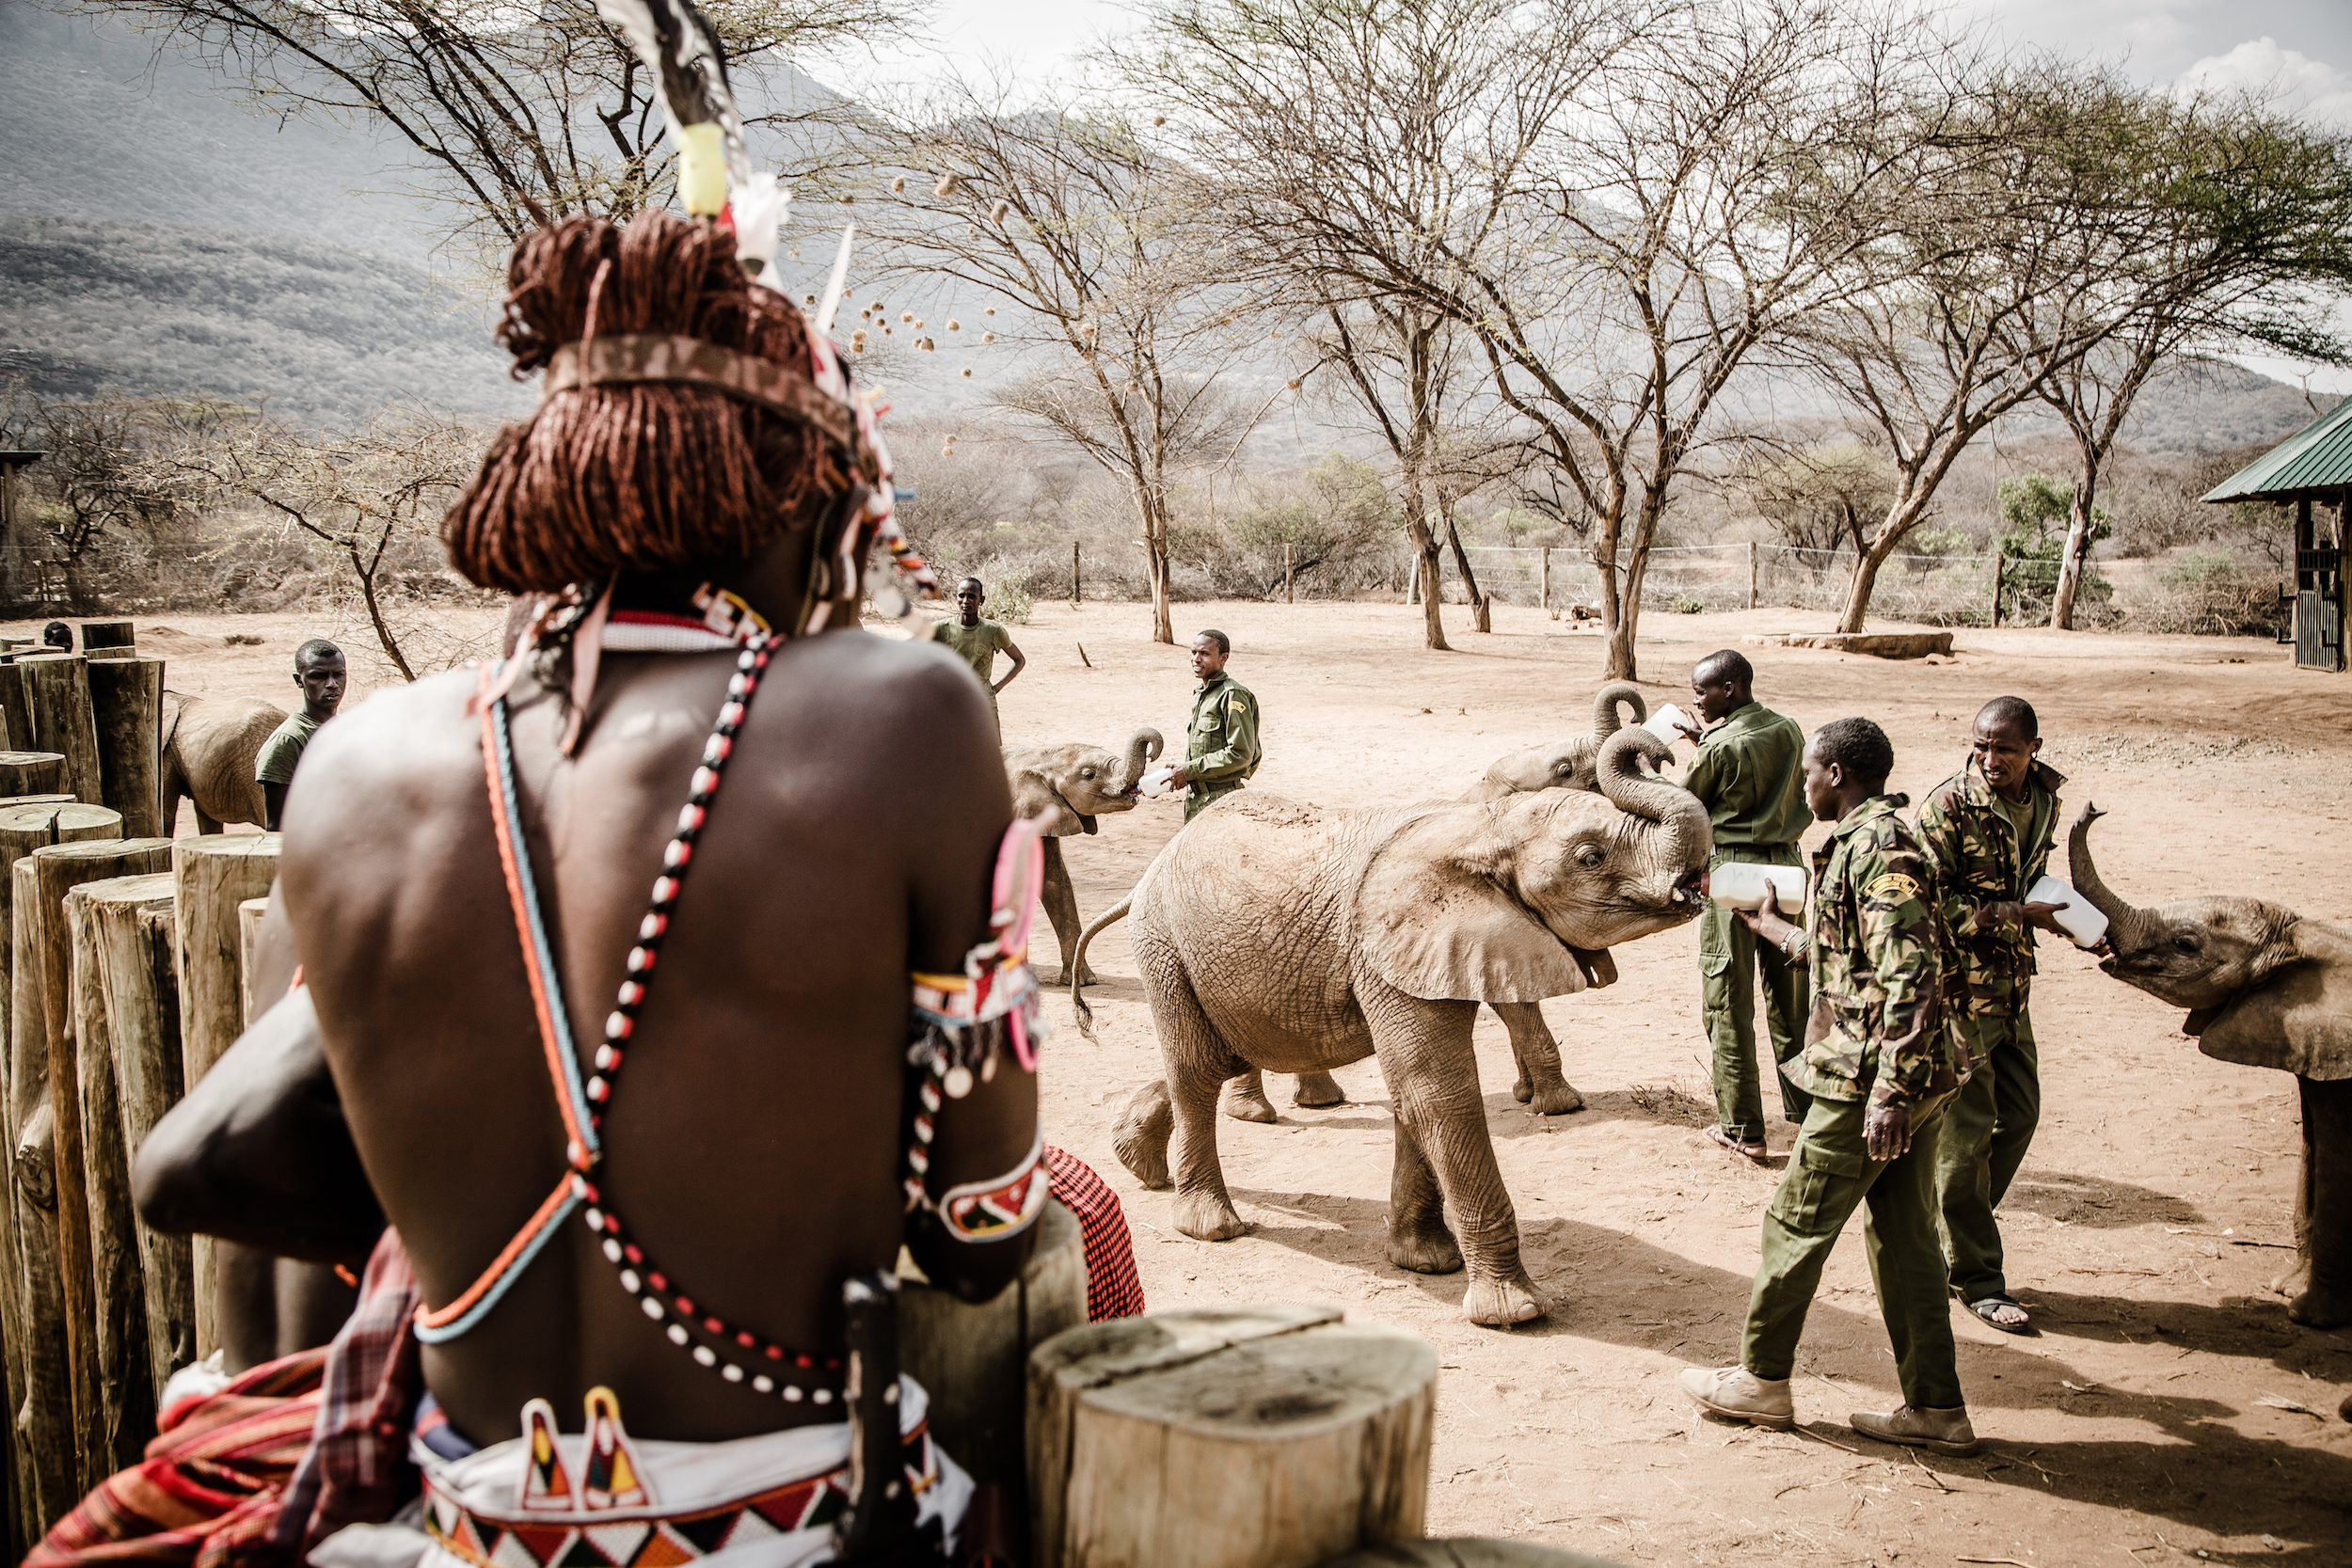 samburu watching baby orphan elephants drink milk out of bottles from their caretakers at Reteti Elephant Sanctuary